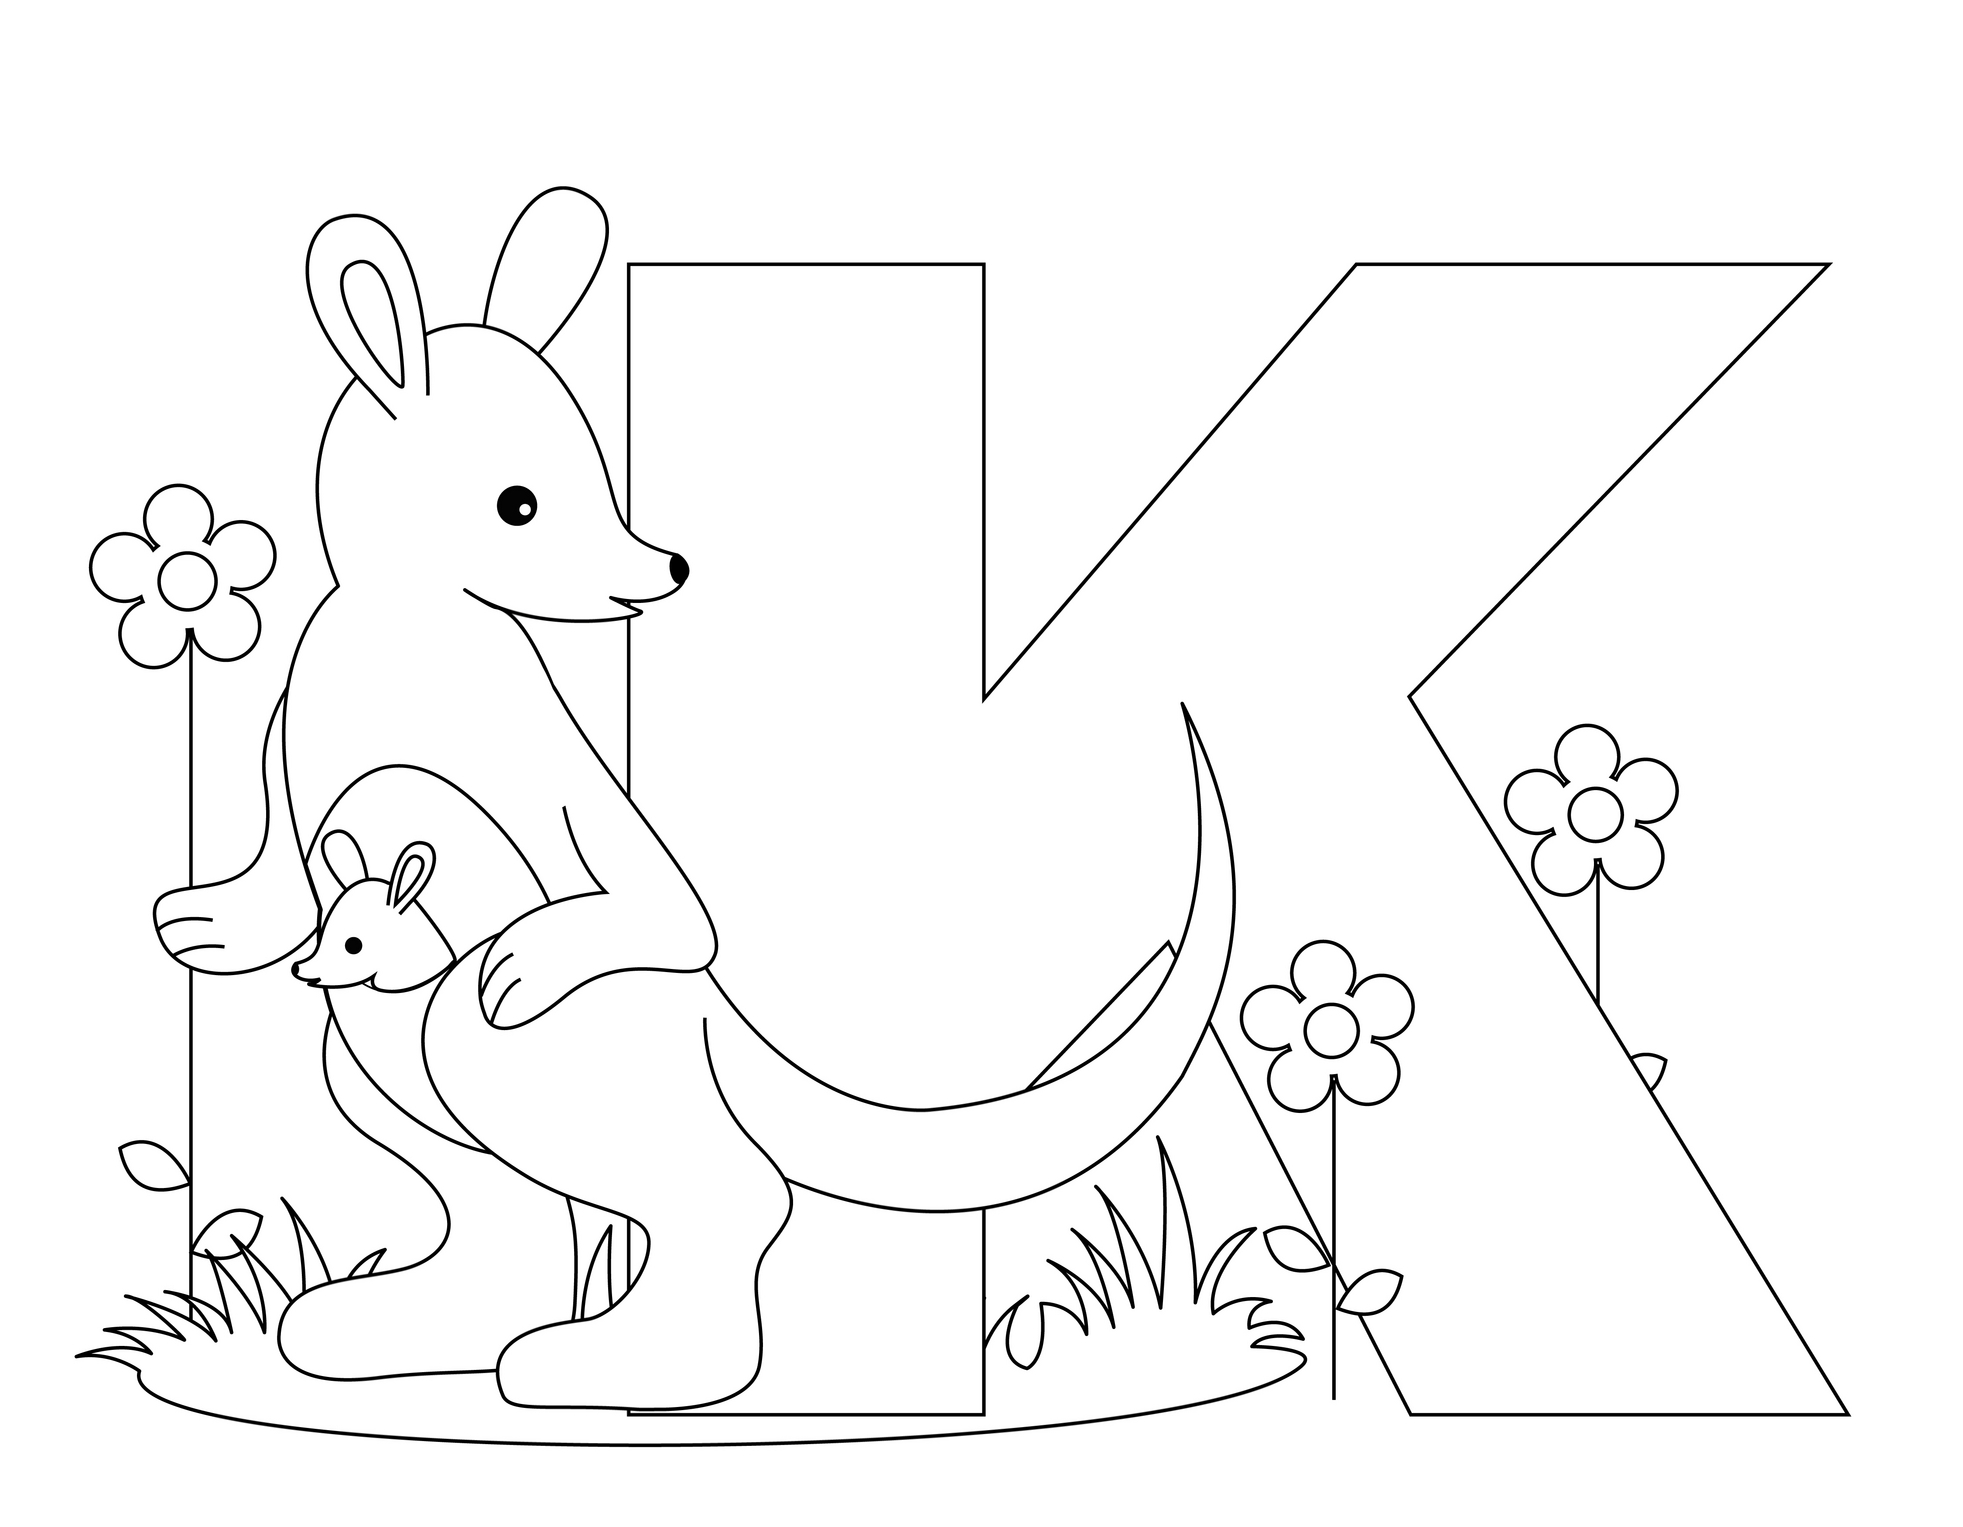 Graffiti letter k coloring pages juvecenitdelacabrera graffiti spiritdancerdesigns Image collections